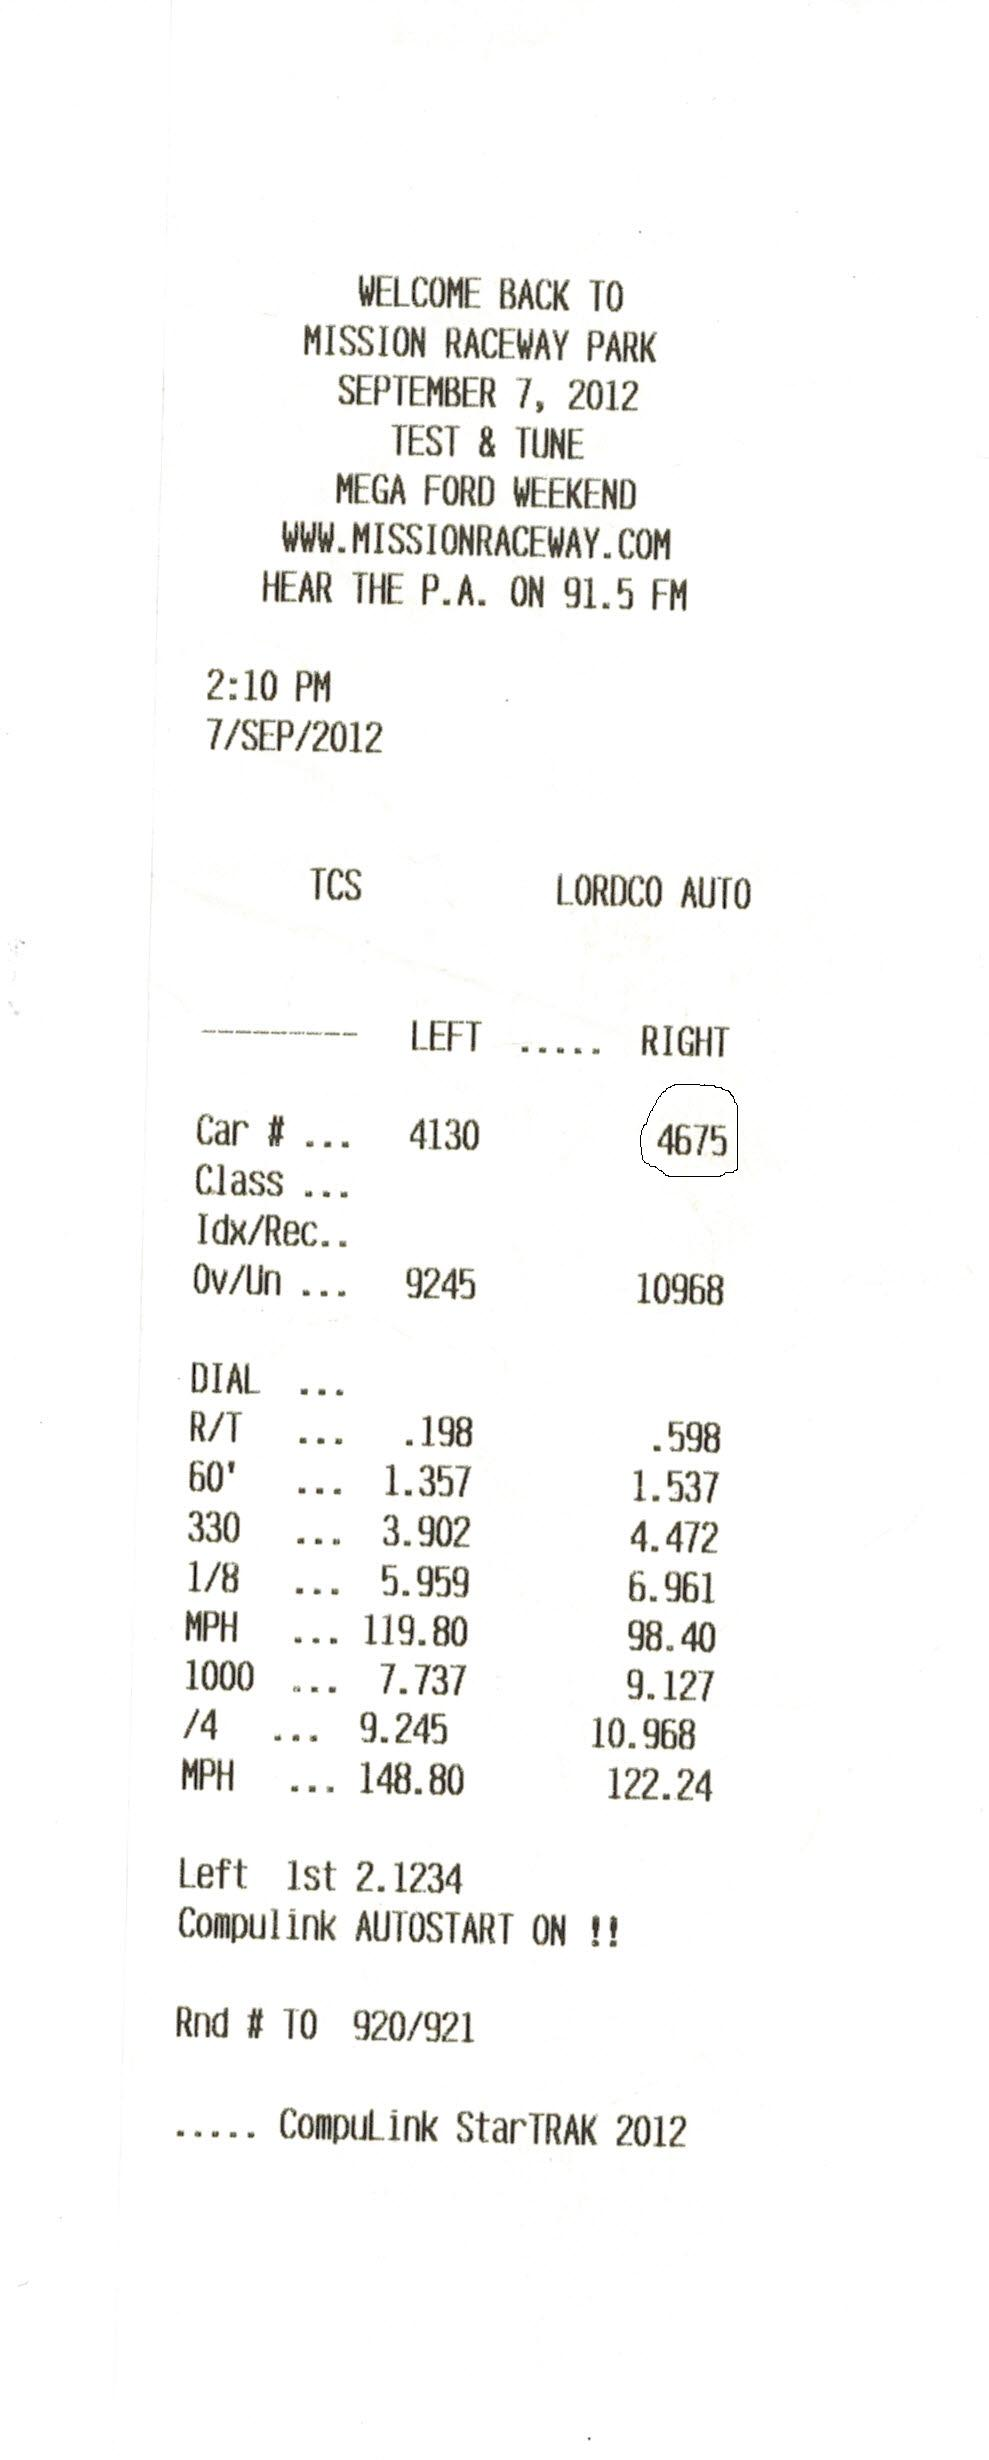 1979 Ford Mustang LX Timeslip Scan